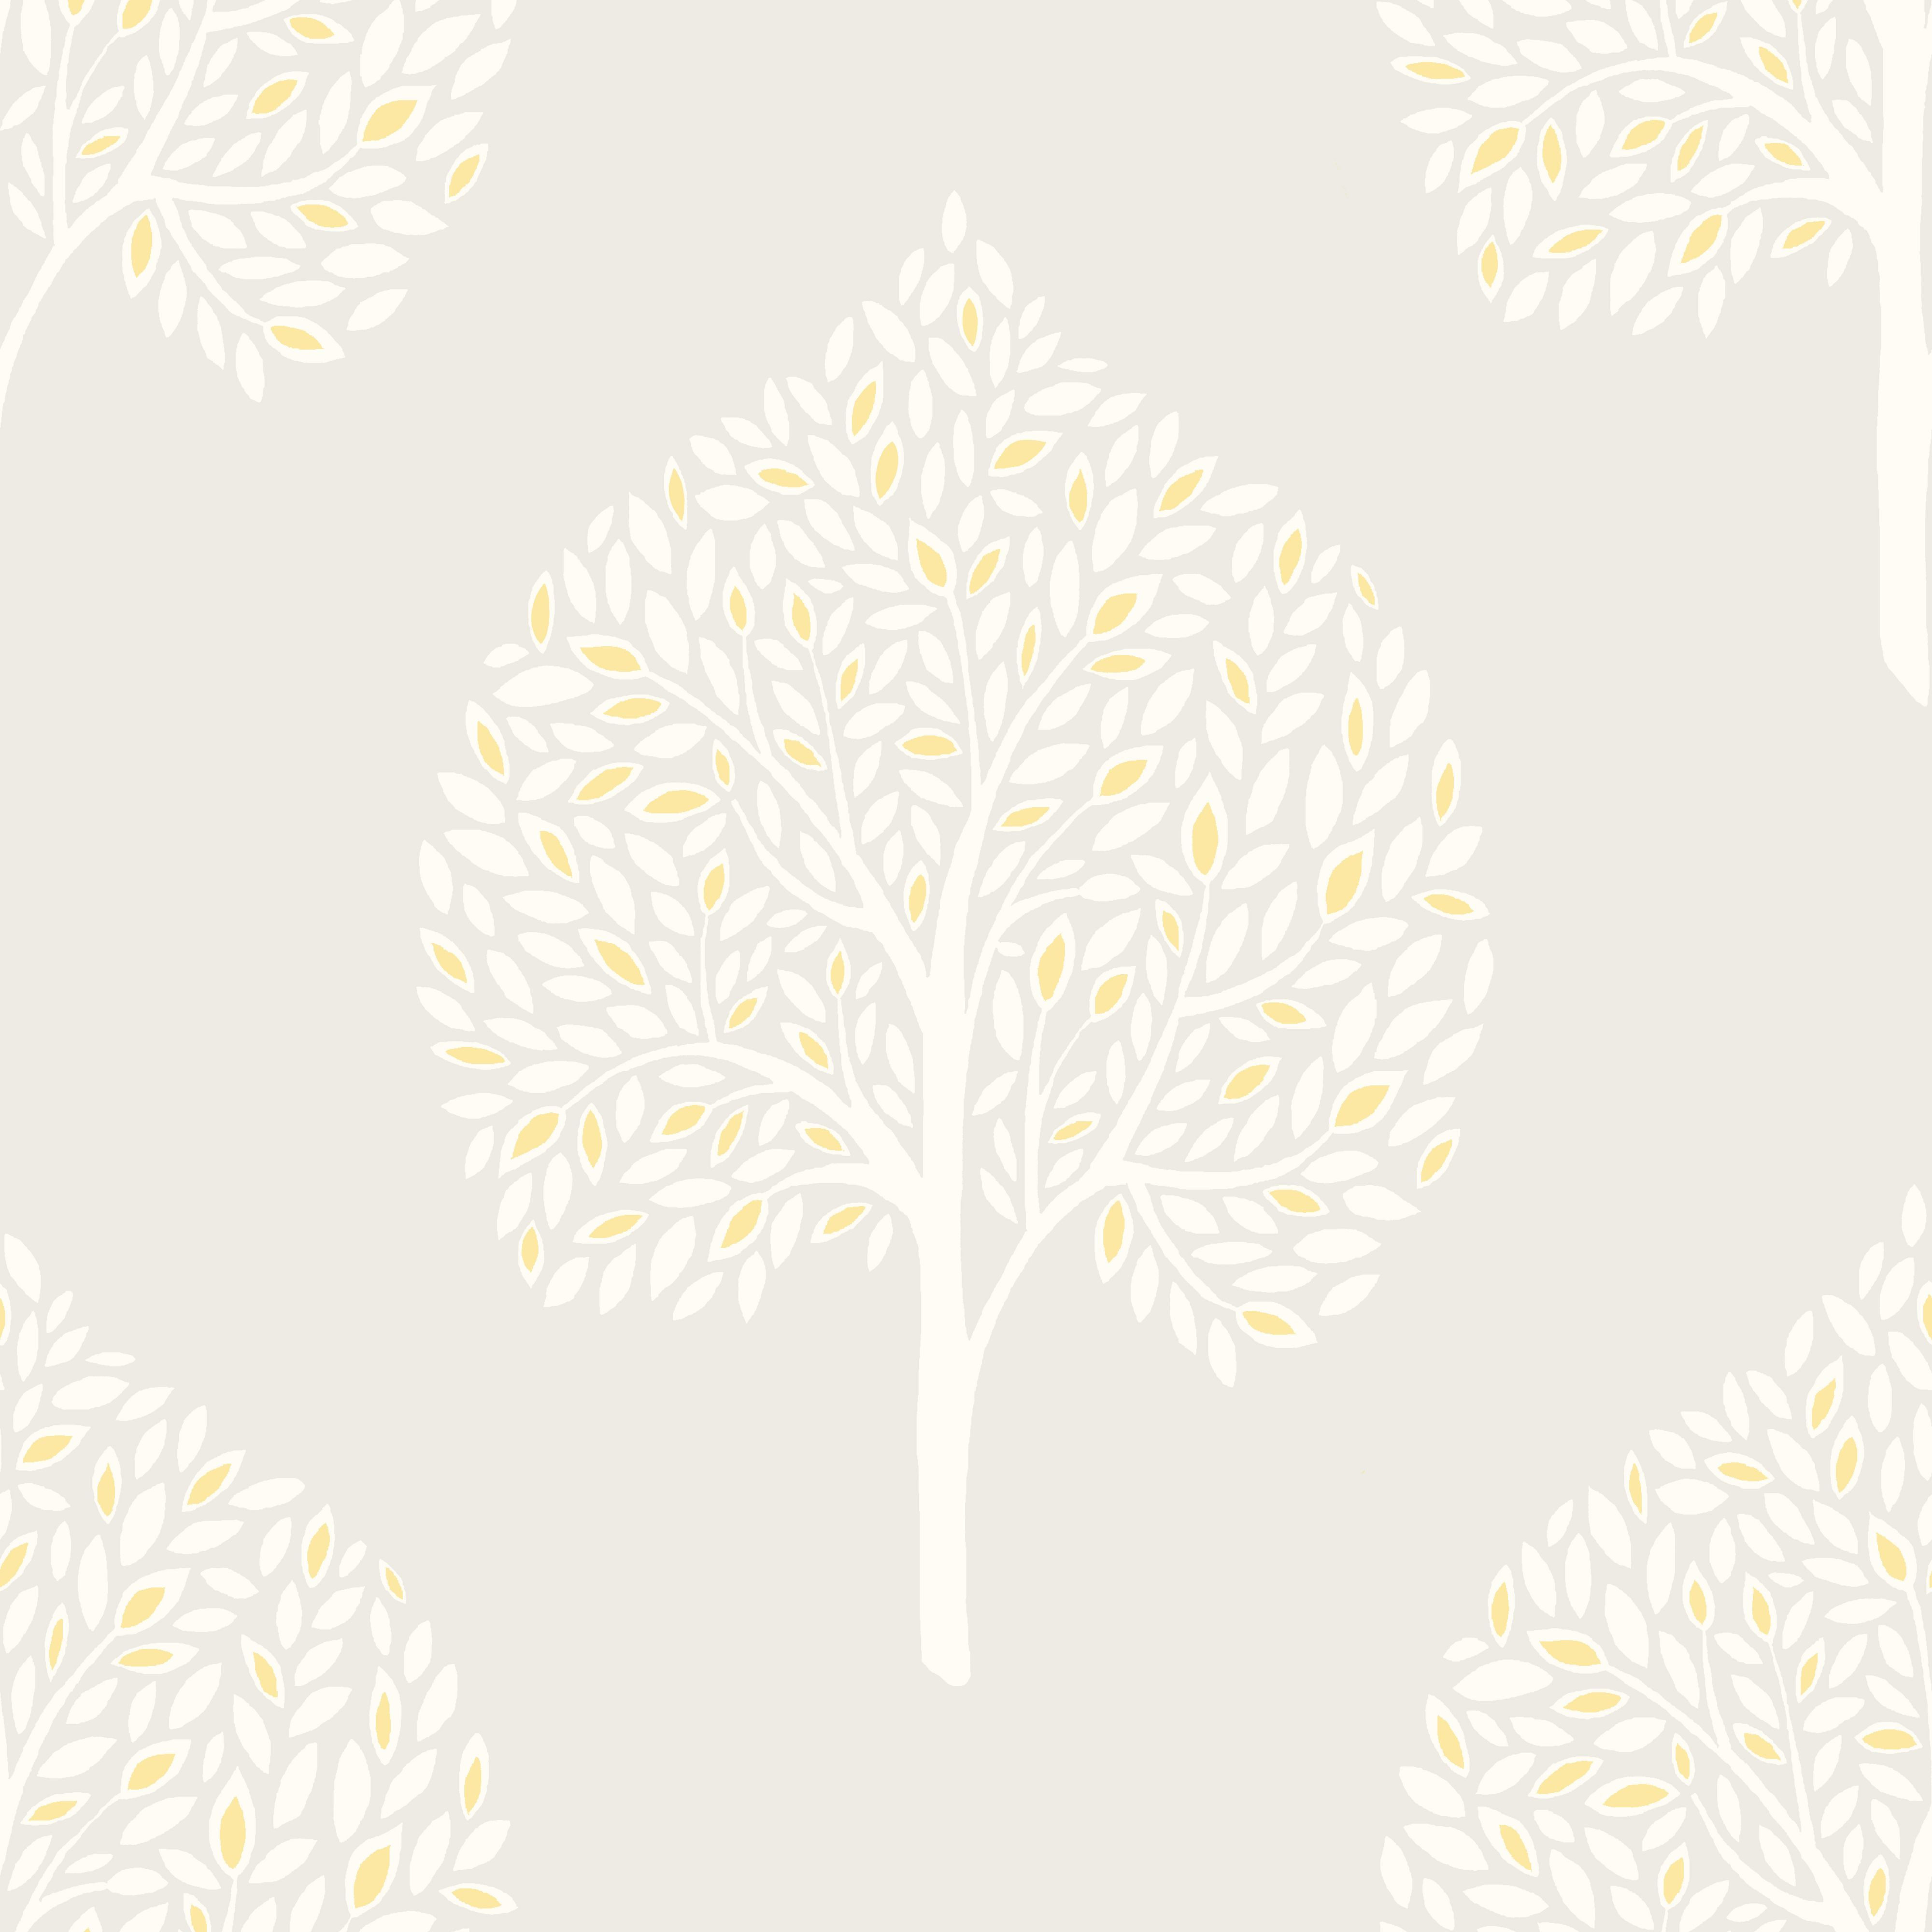 Rowan French Grey Trees Mica Wallpaper - Departments - Diy